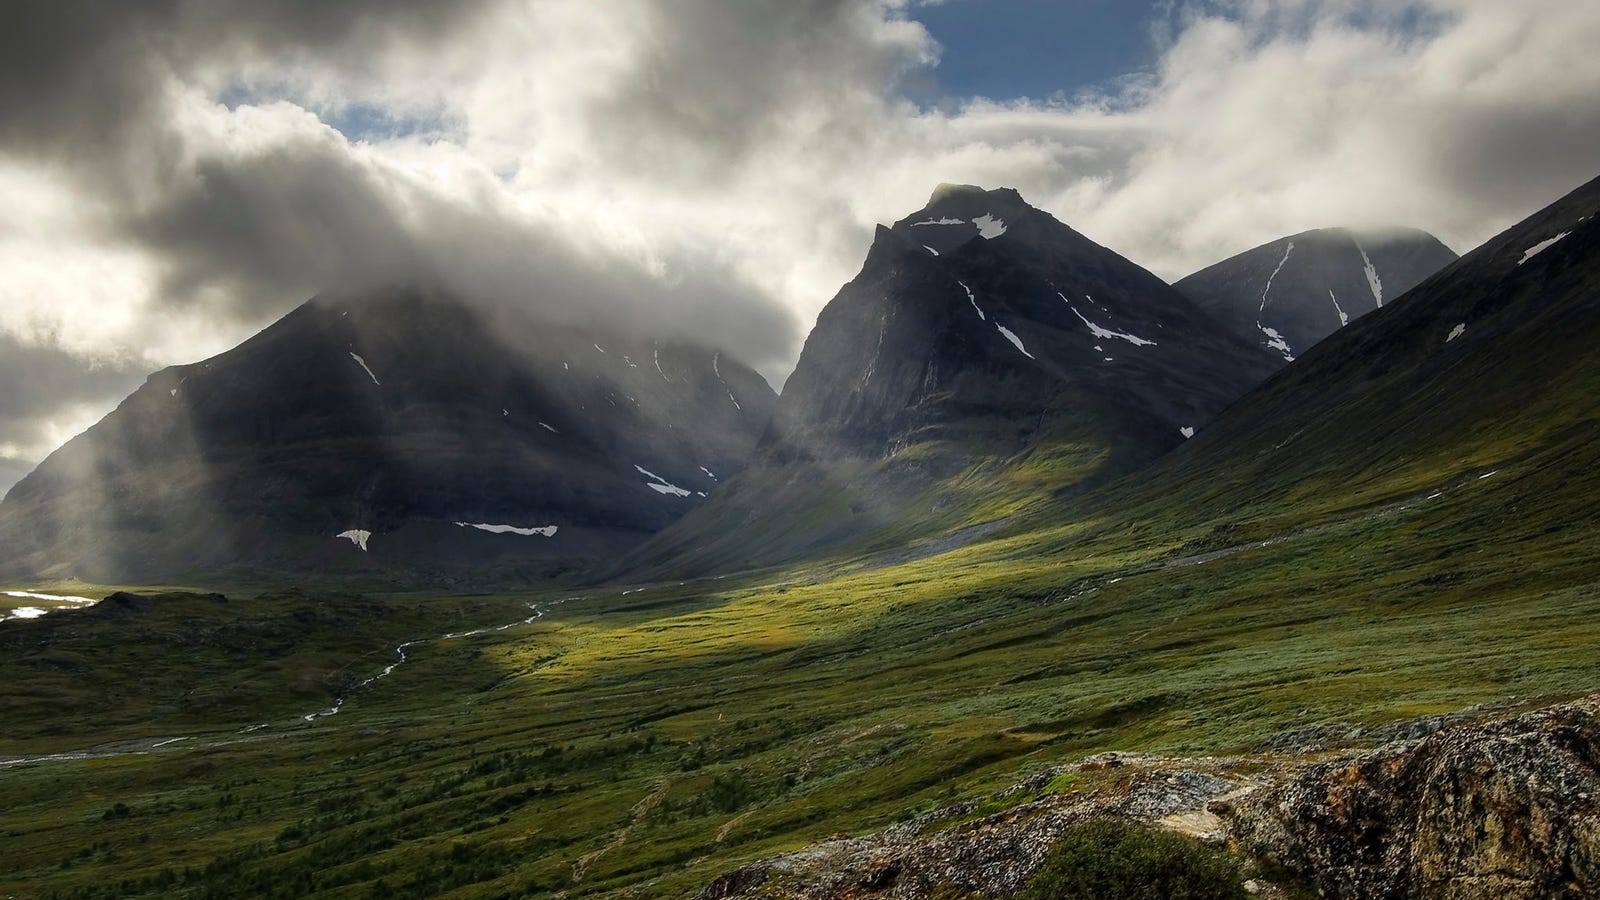 Sweden's Tallest Peak Has Lost Its Title, Thanks to Climate Change